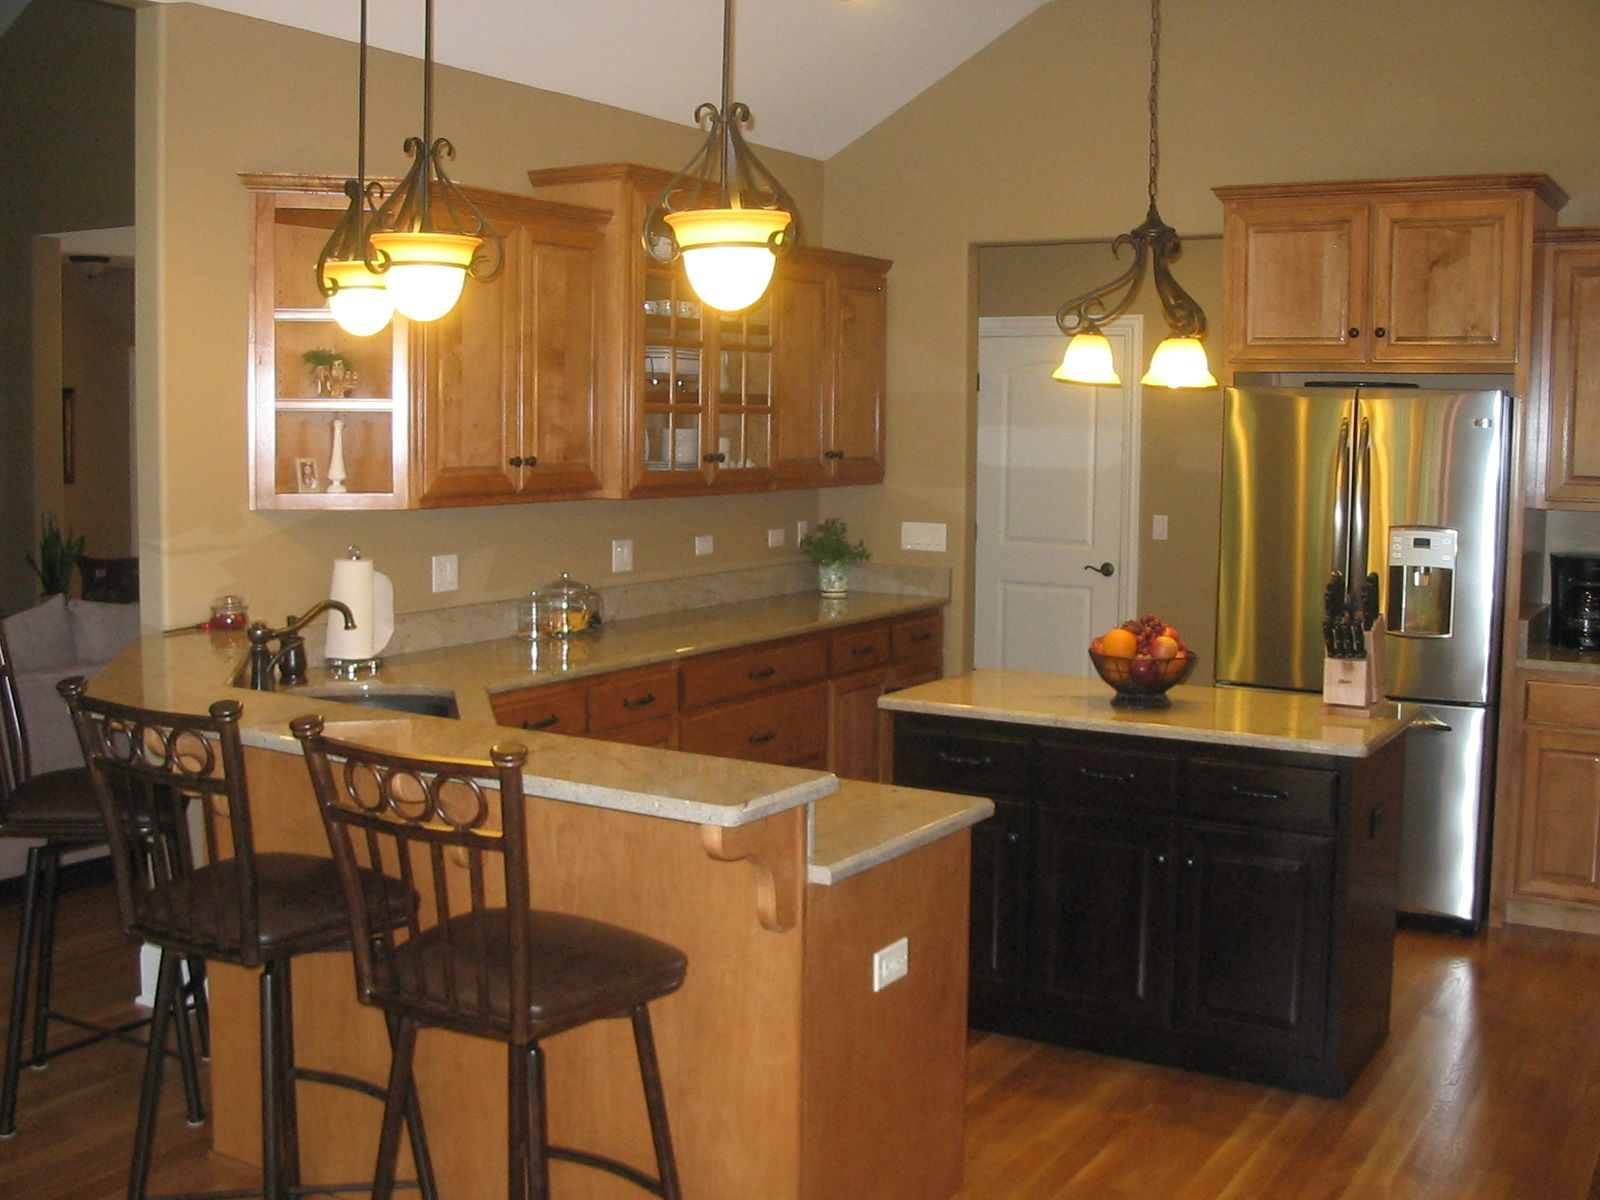 Lowes Cabinets Kitchen Oak Cabinets Espresso Stained Island Cabinets Light Tan